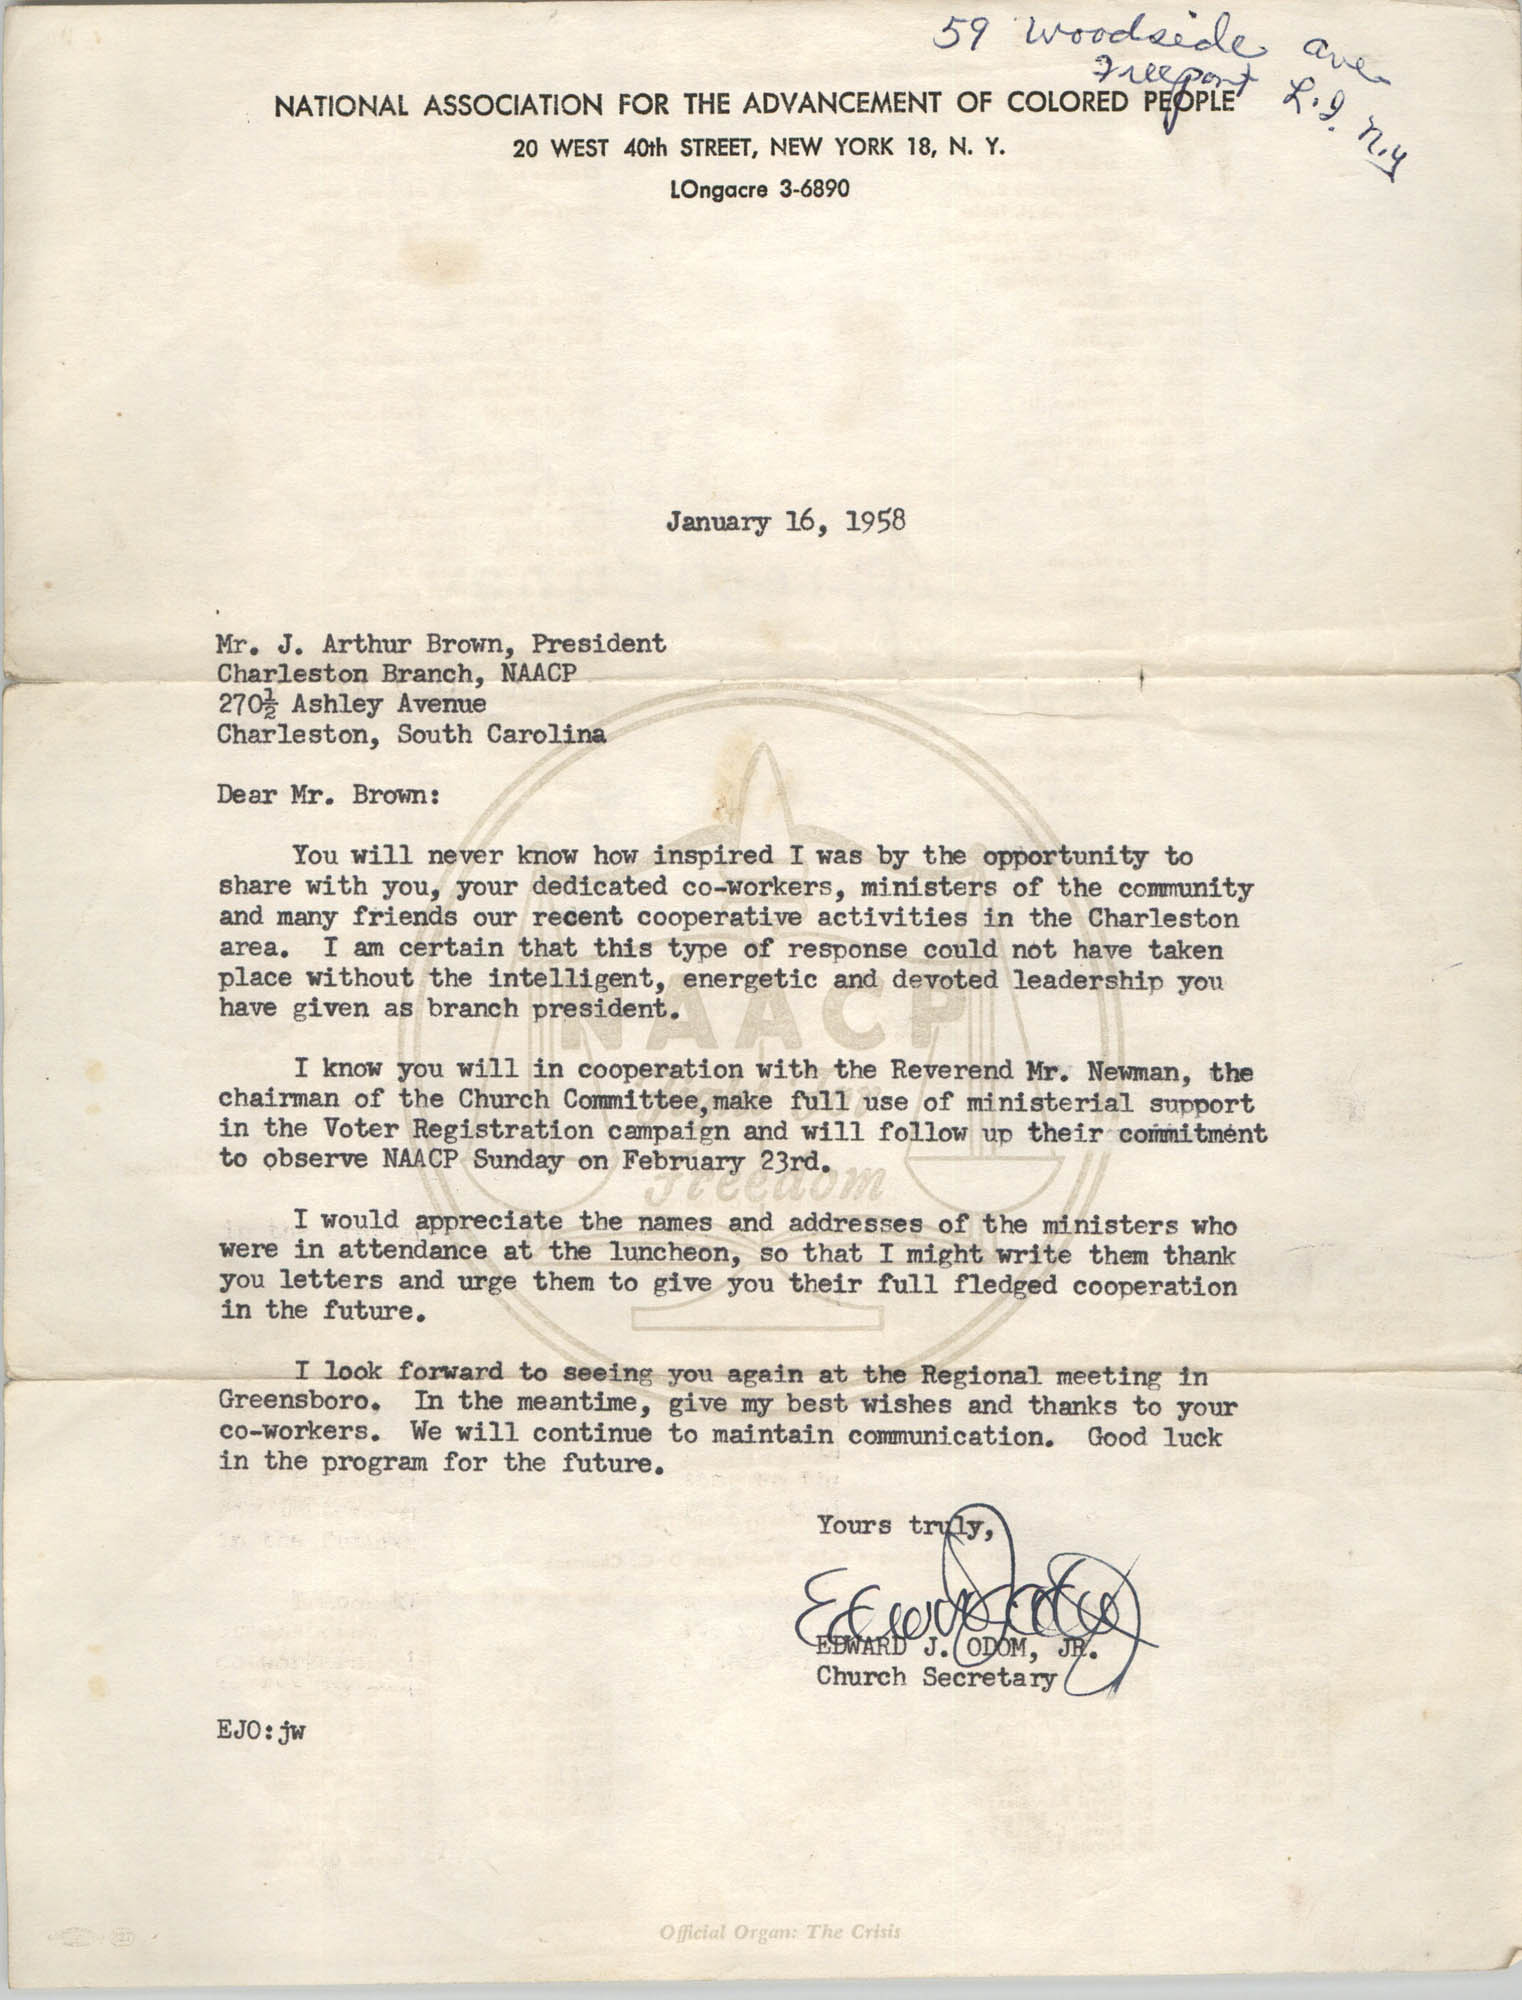 NAACP Memorandum, January 16, 1958